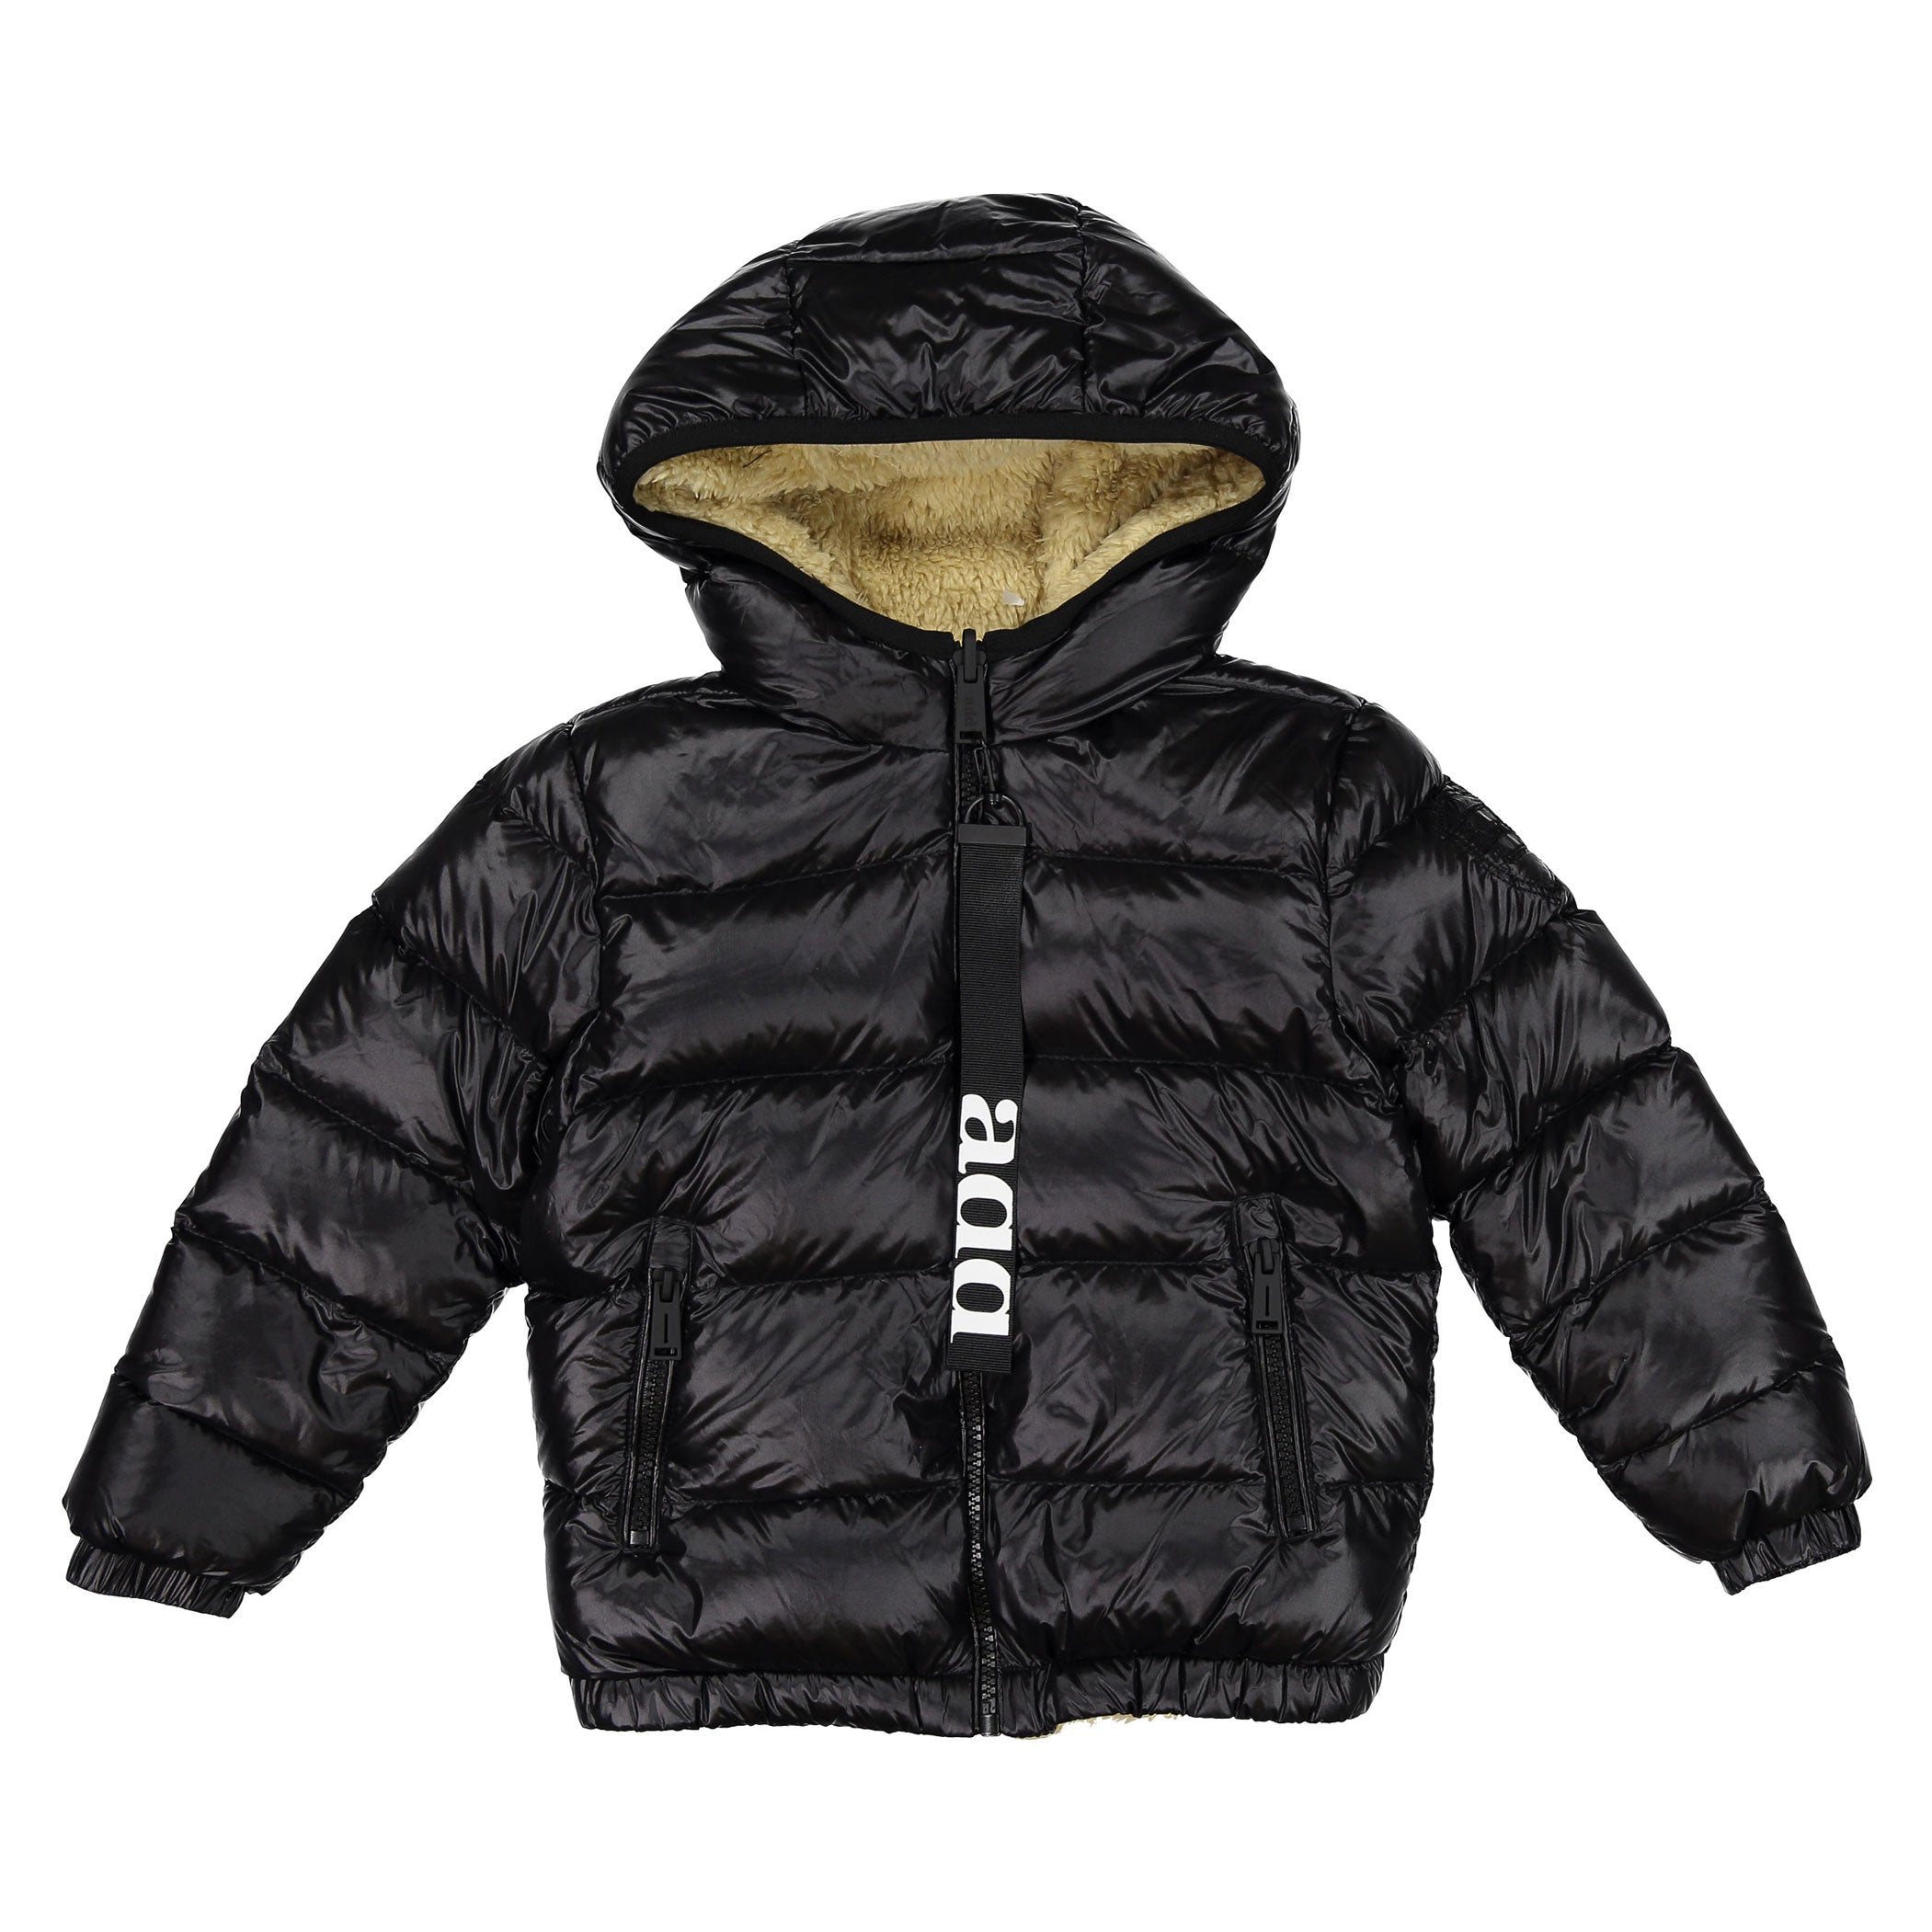 ADD Black + Lamb Reversible Down Coat